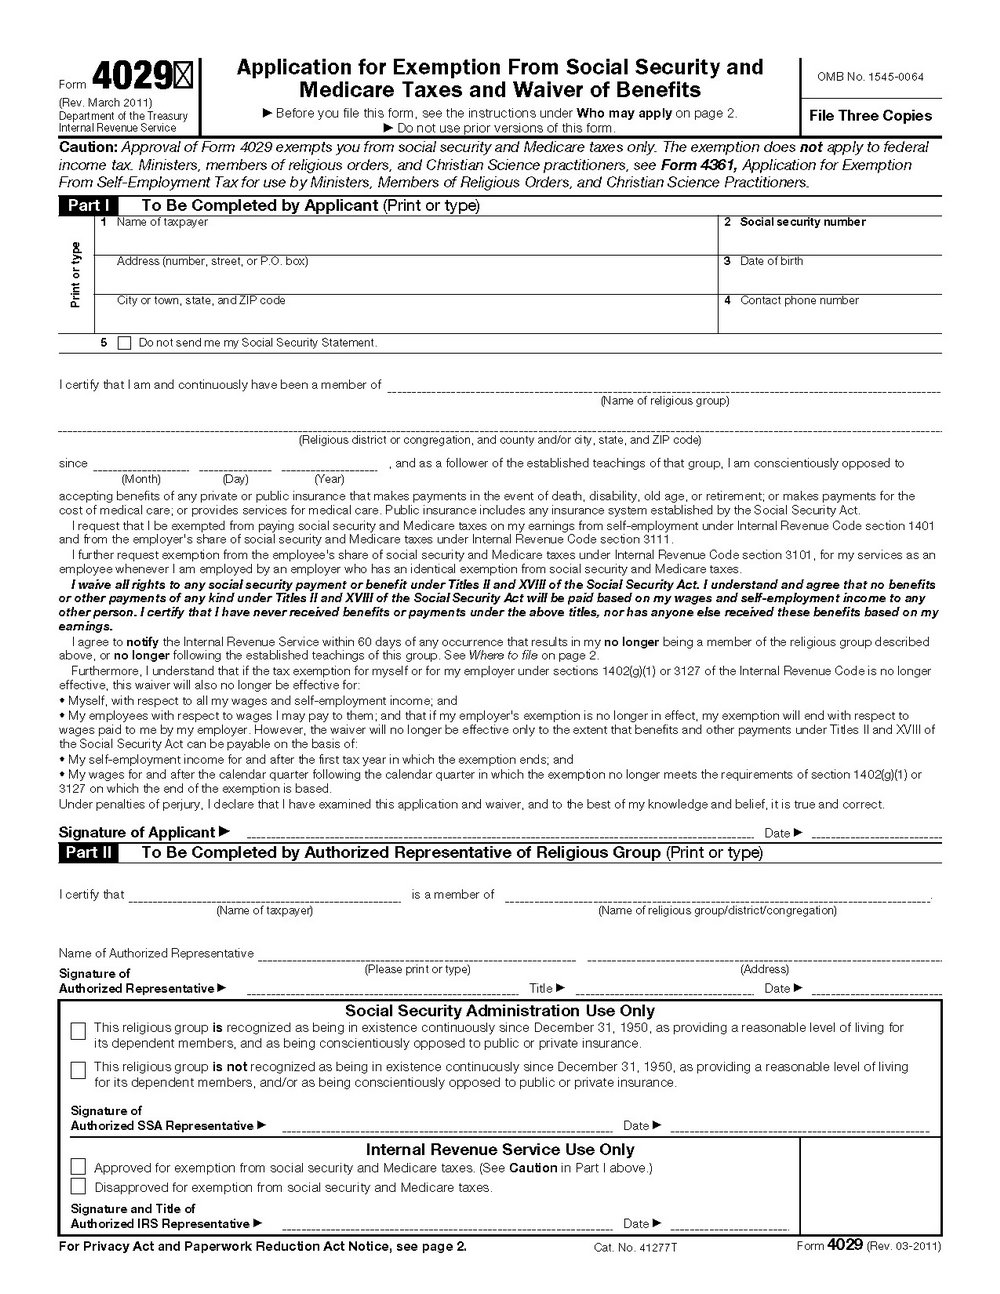 Ssi Disability Forms